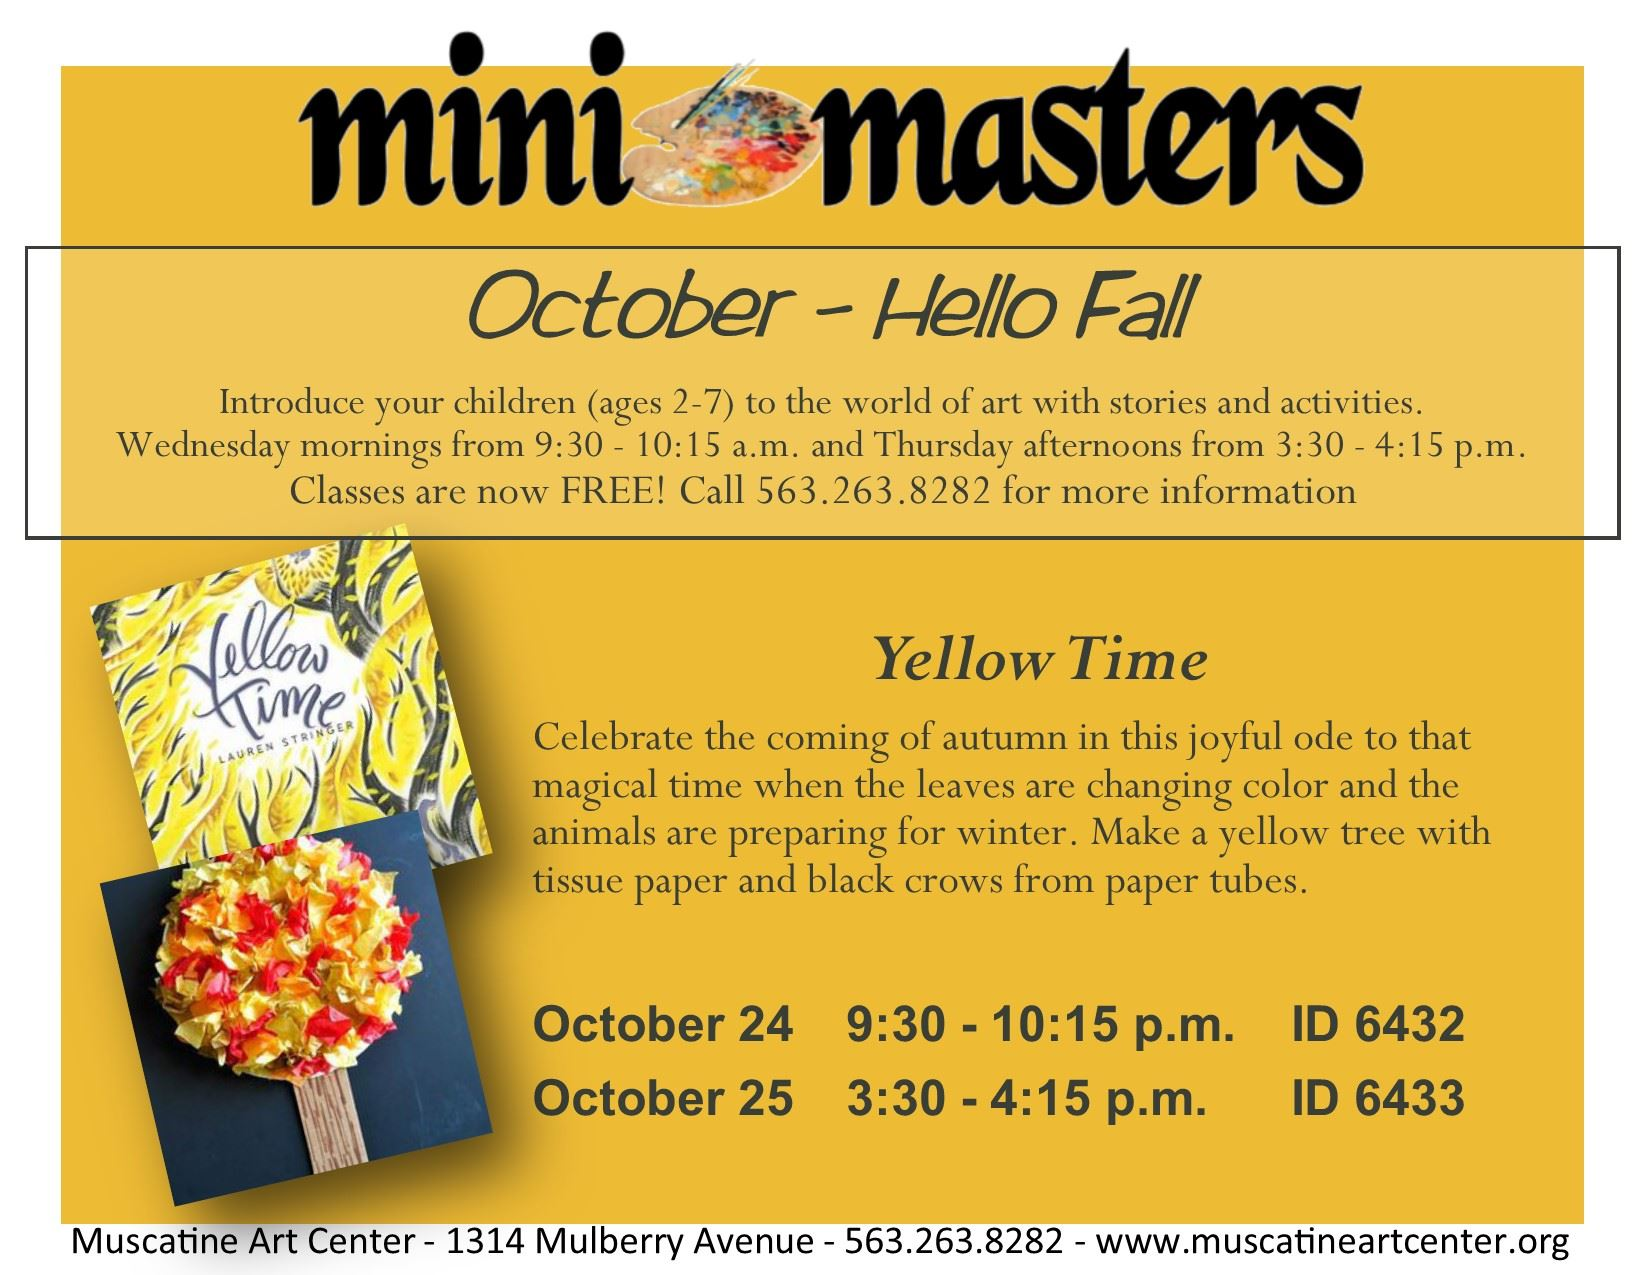 October 24-25 - mini masters - Yellow Time